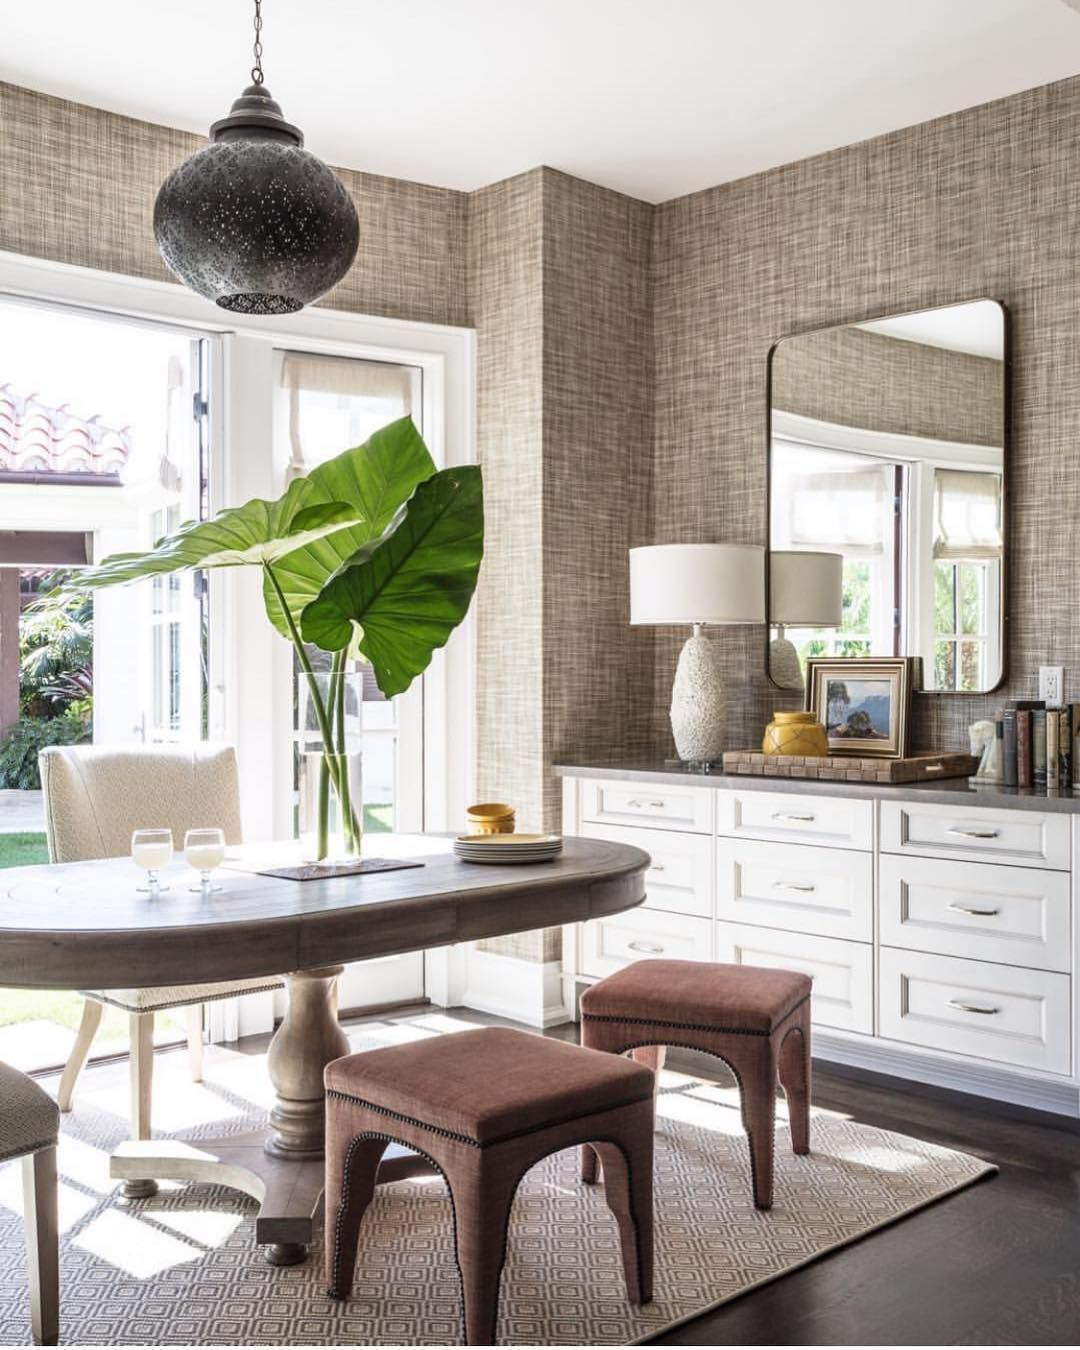 Mirror Image Home On Instagram When Your Room Is Art Add A Mirror Absolutely Love This Placement And All Of The Chic Dining Room Dining Room Design Home